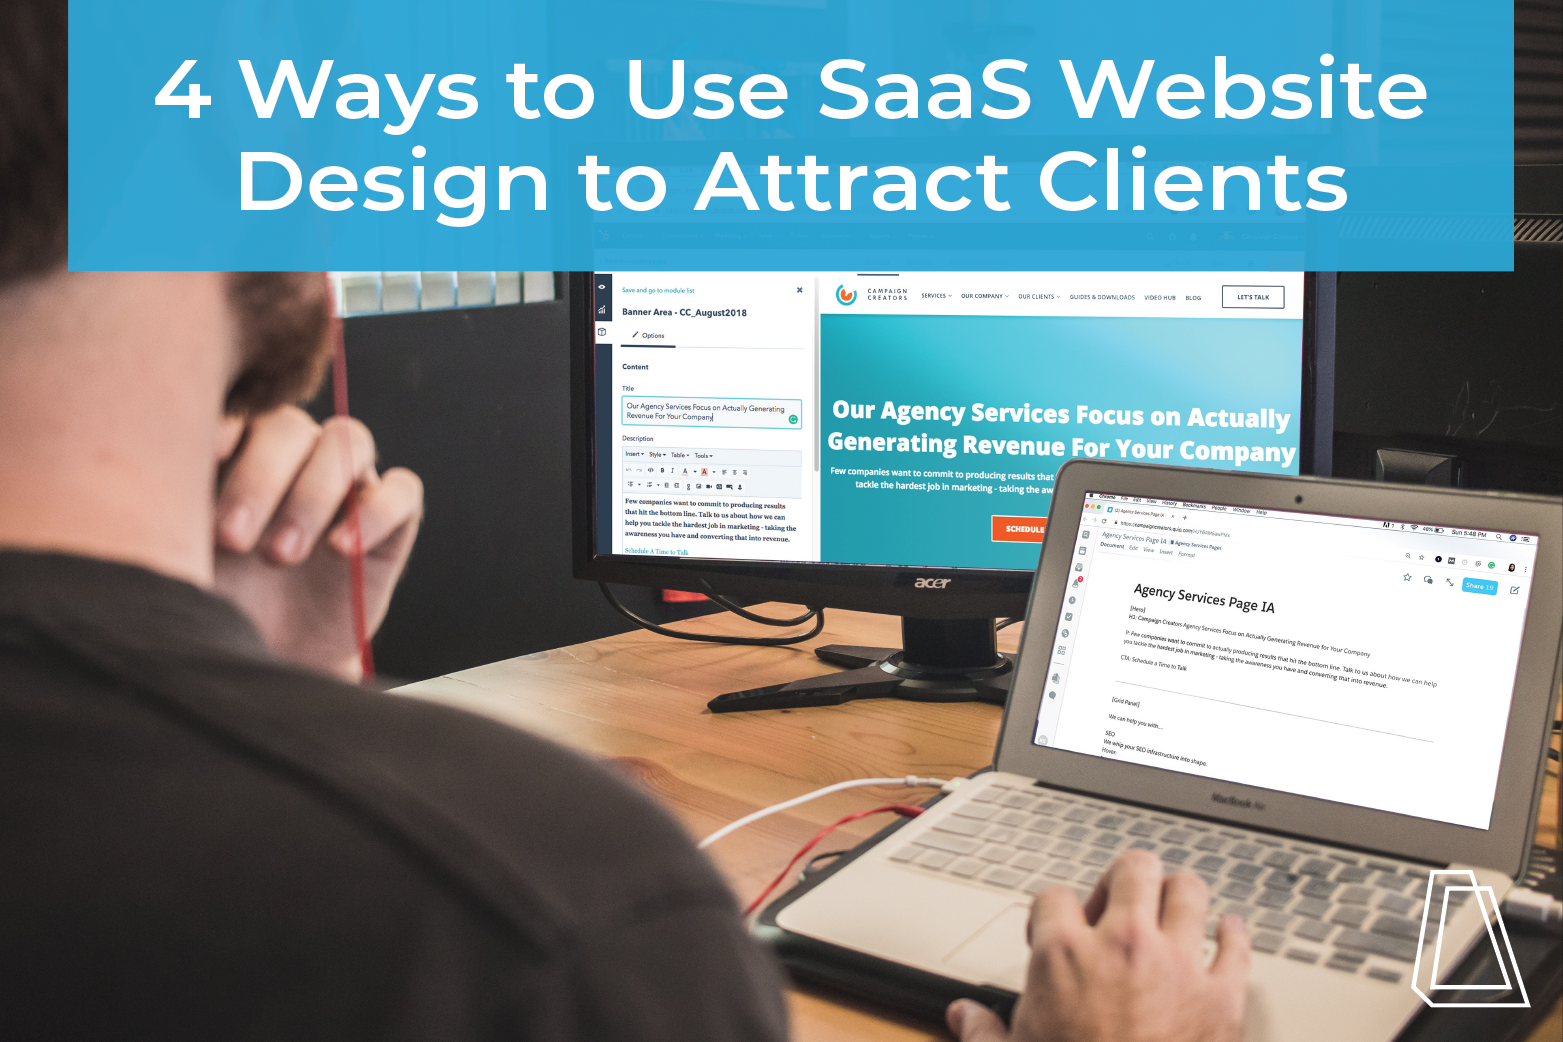 4 ways to use saas website design to attract clients